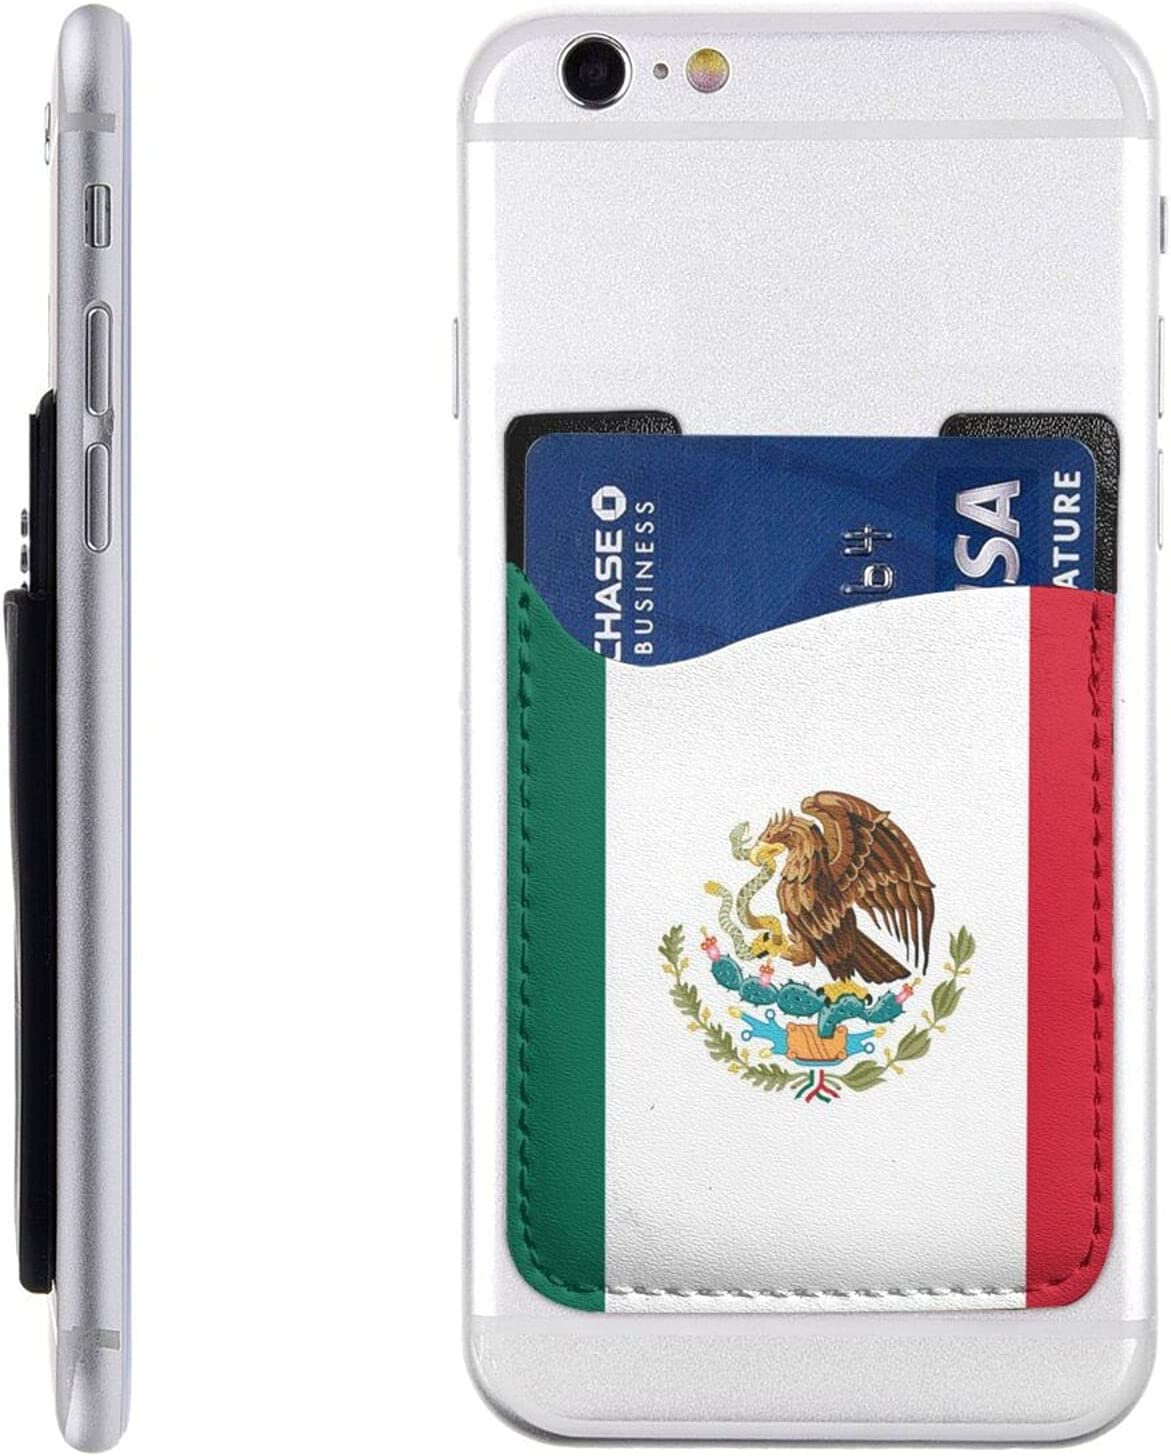 Flag of Mexico New life cheap Phone Card Wallet Cell Stick On Holder